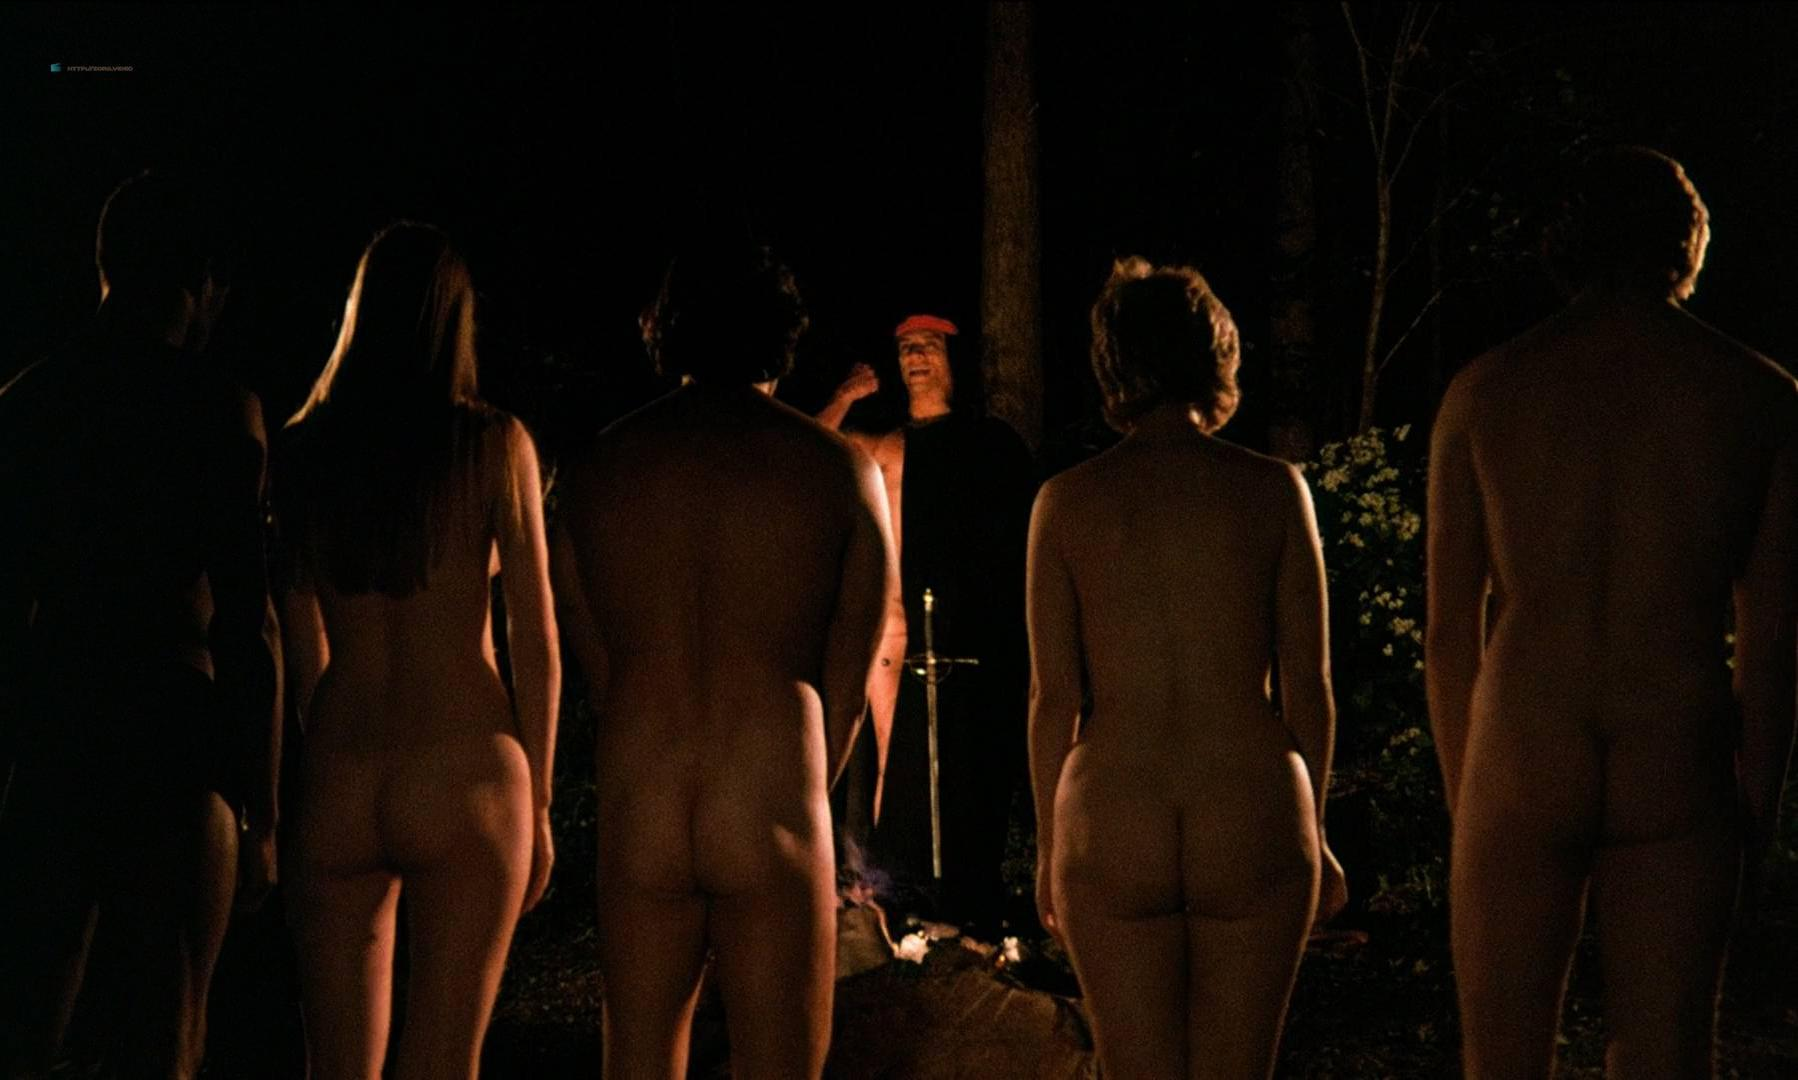 Lynn Lowry nude, Jadine Wong nude, Iris Brooks nude - I Drink Your Blood (1970)